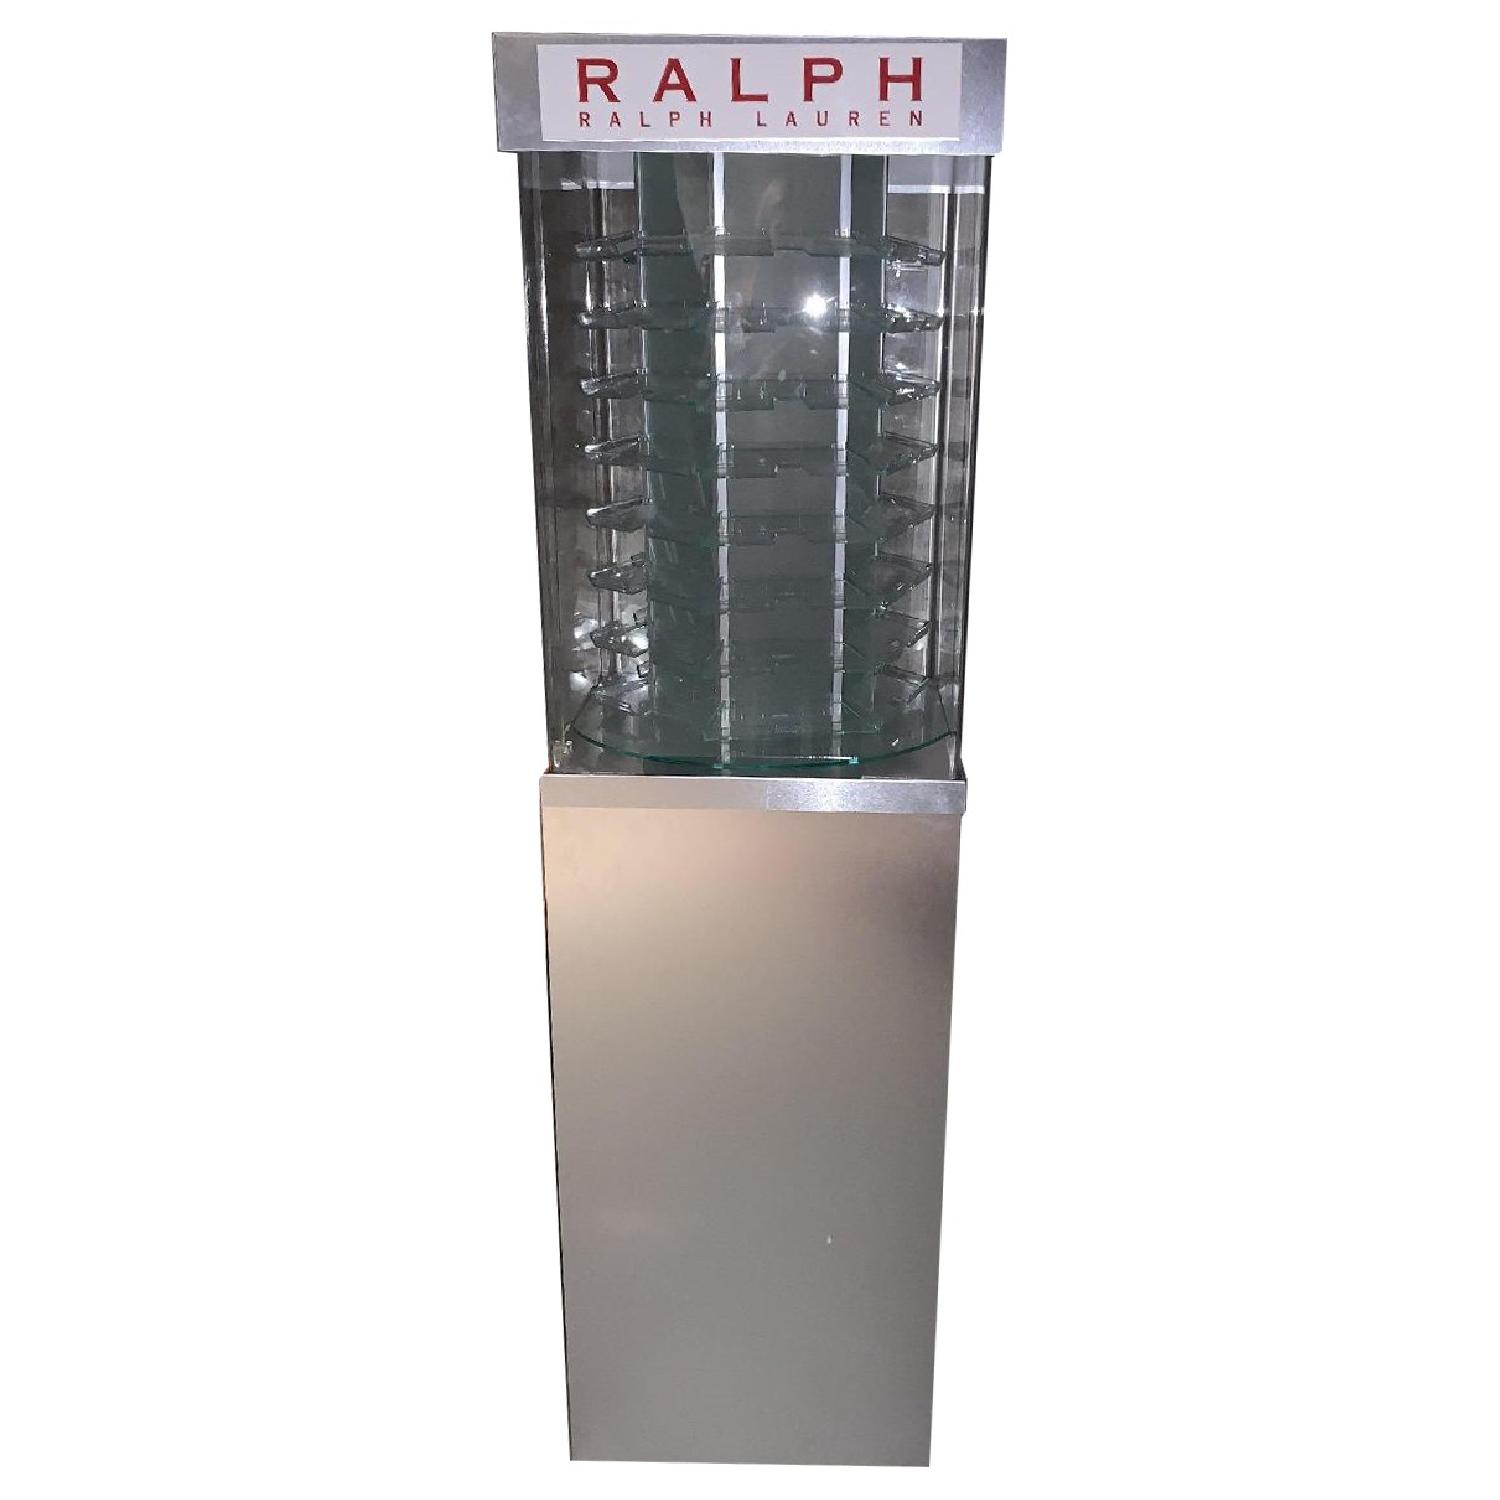 Ralph Lauren Store Sunglasses Display Case